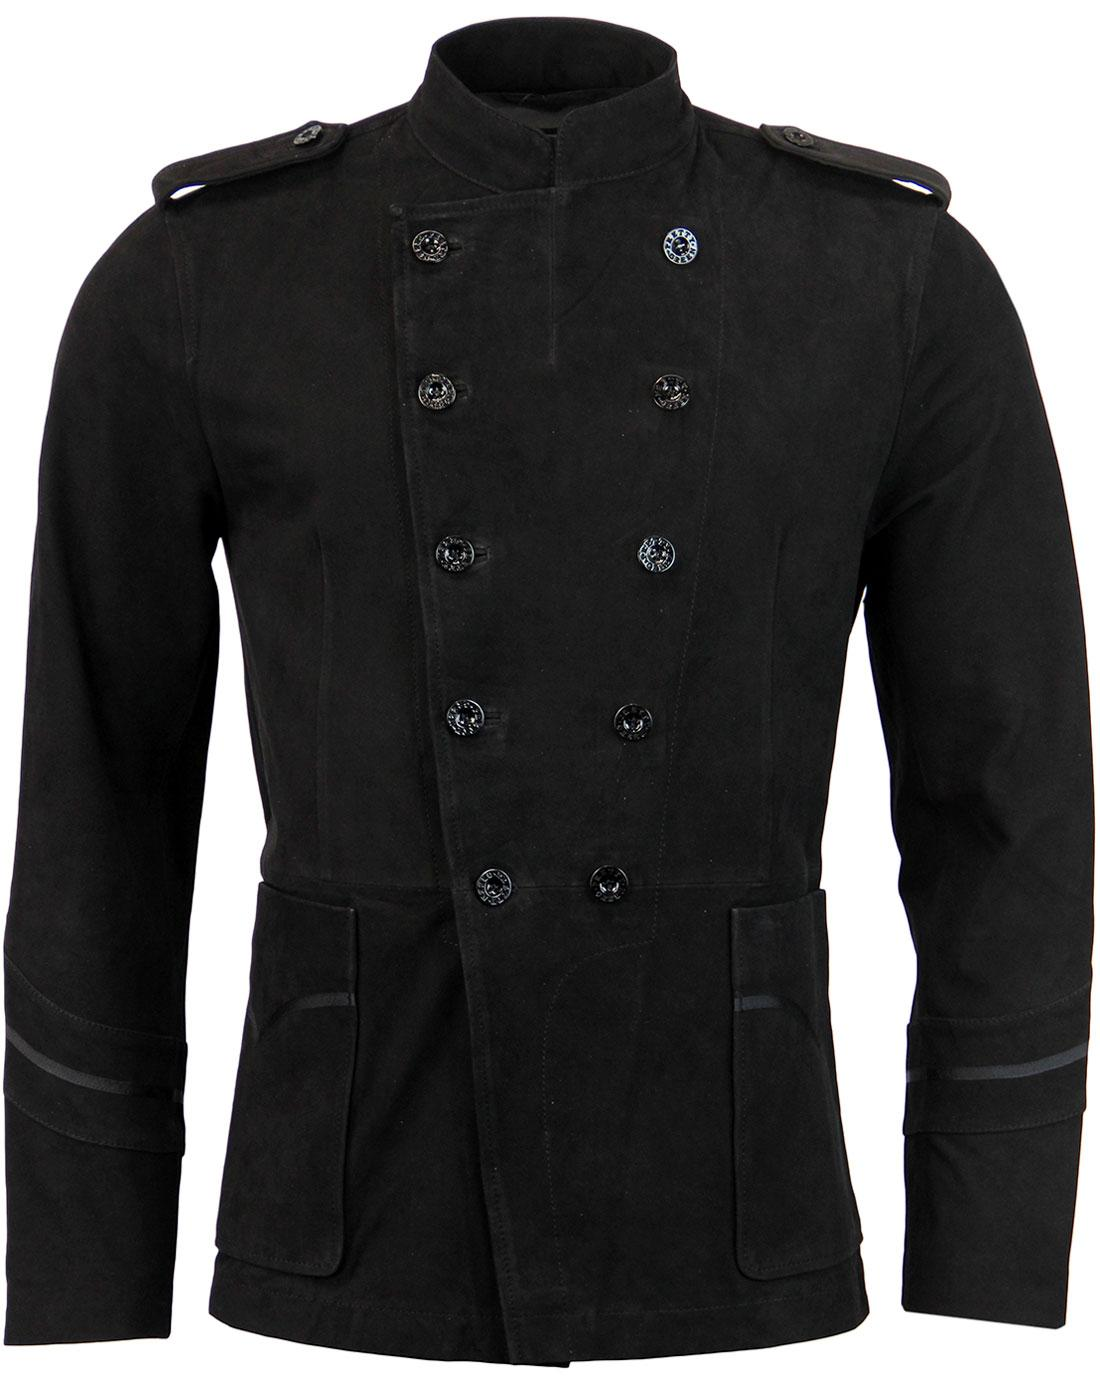 Jinny PRETTY GREEN Retro Mod Suede Military Jacket